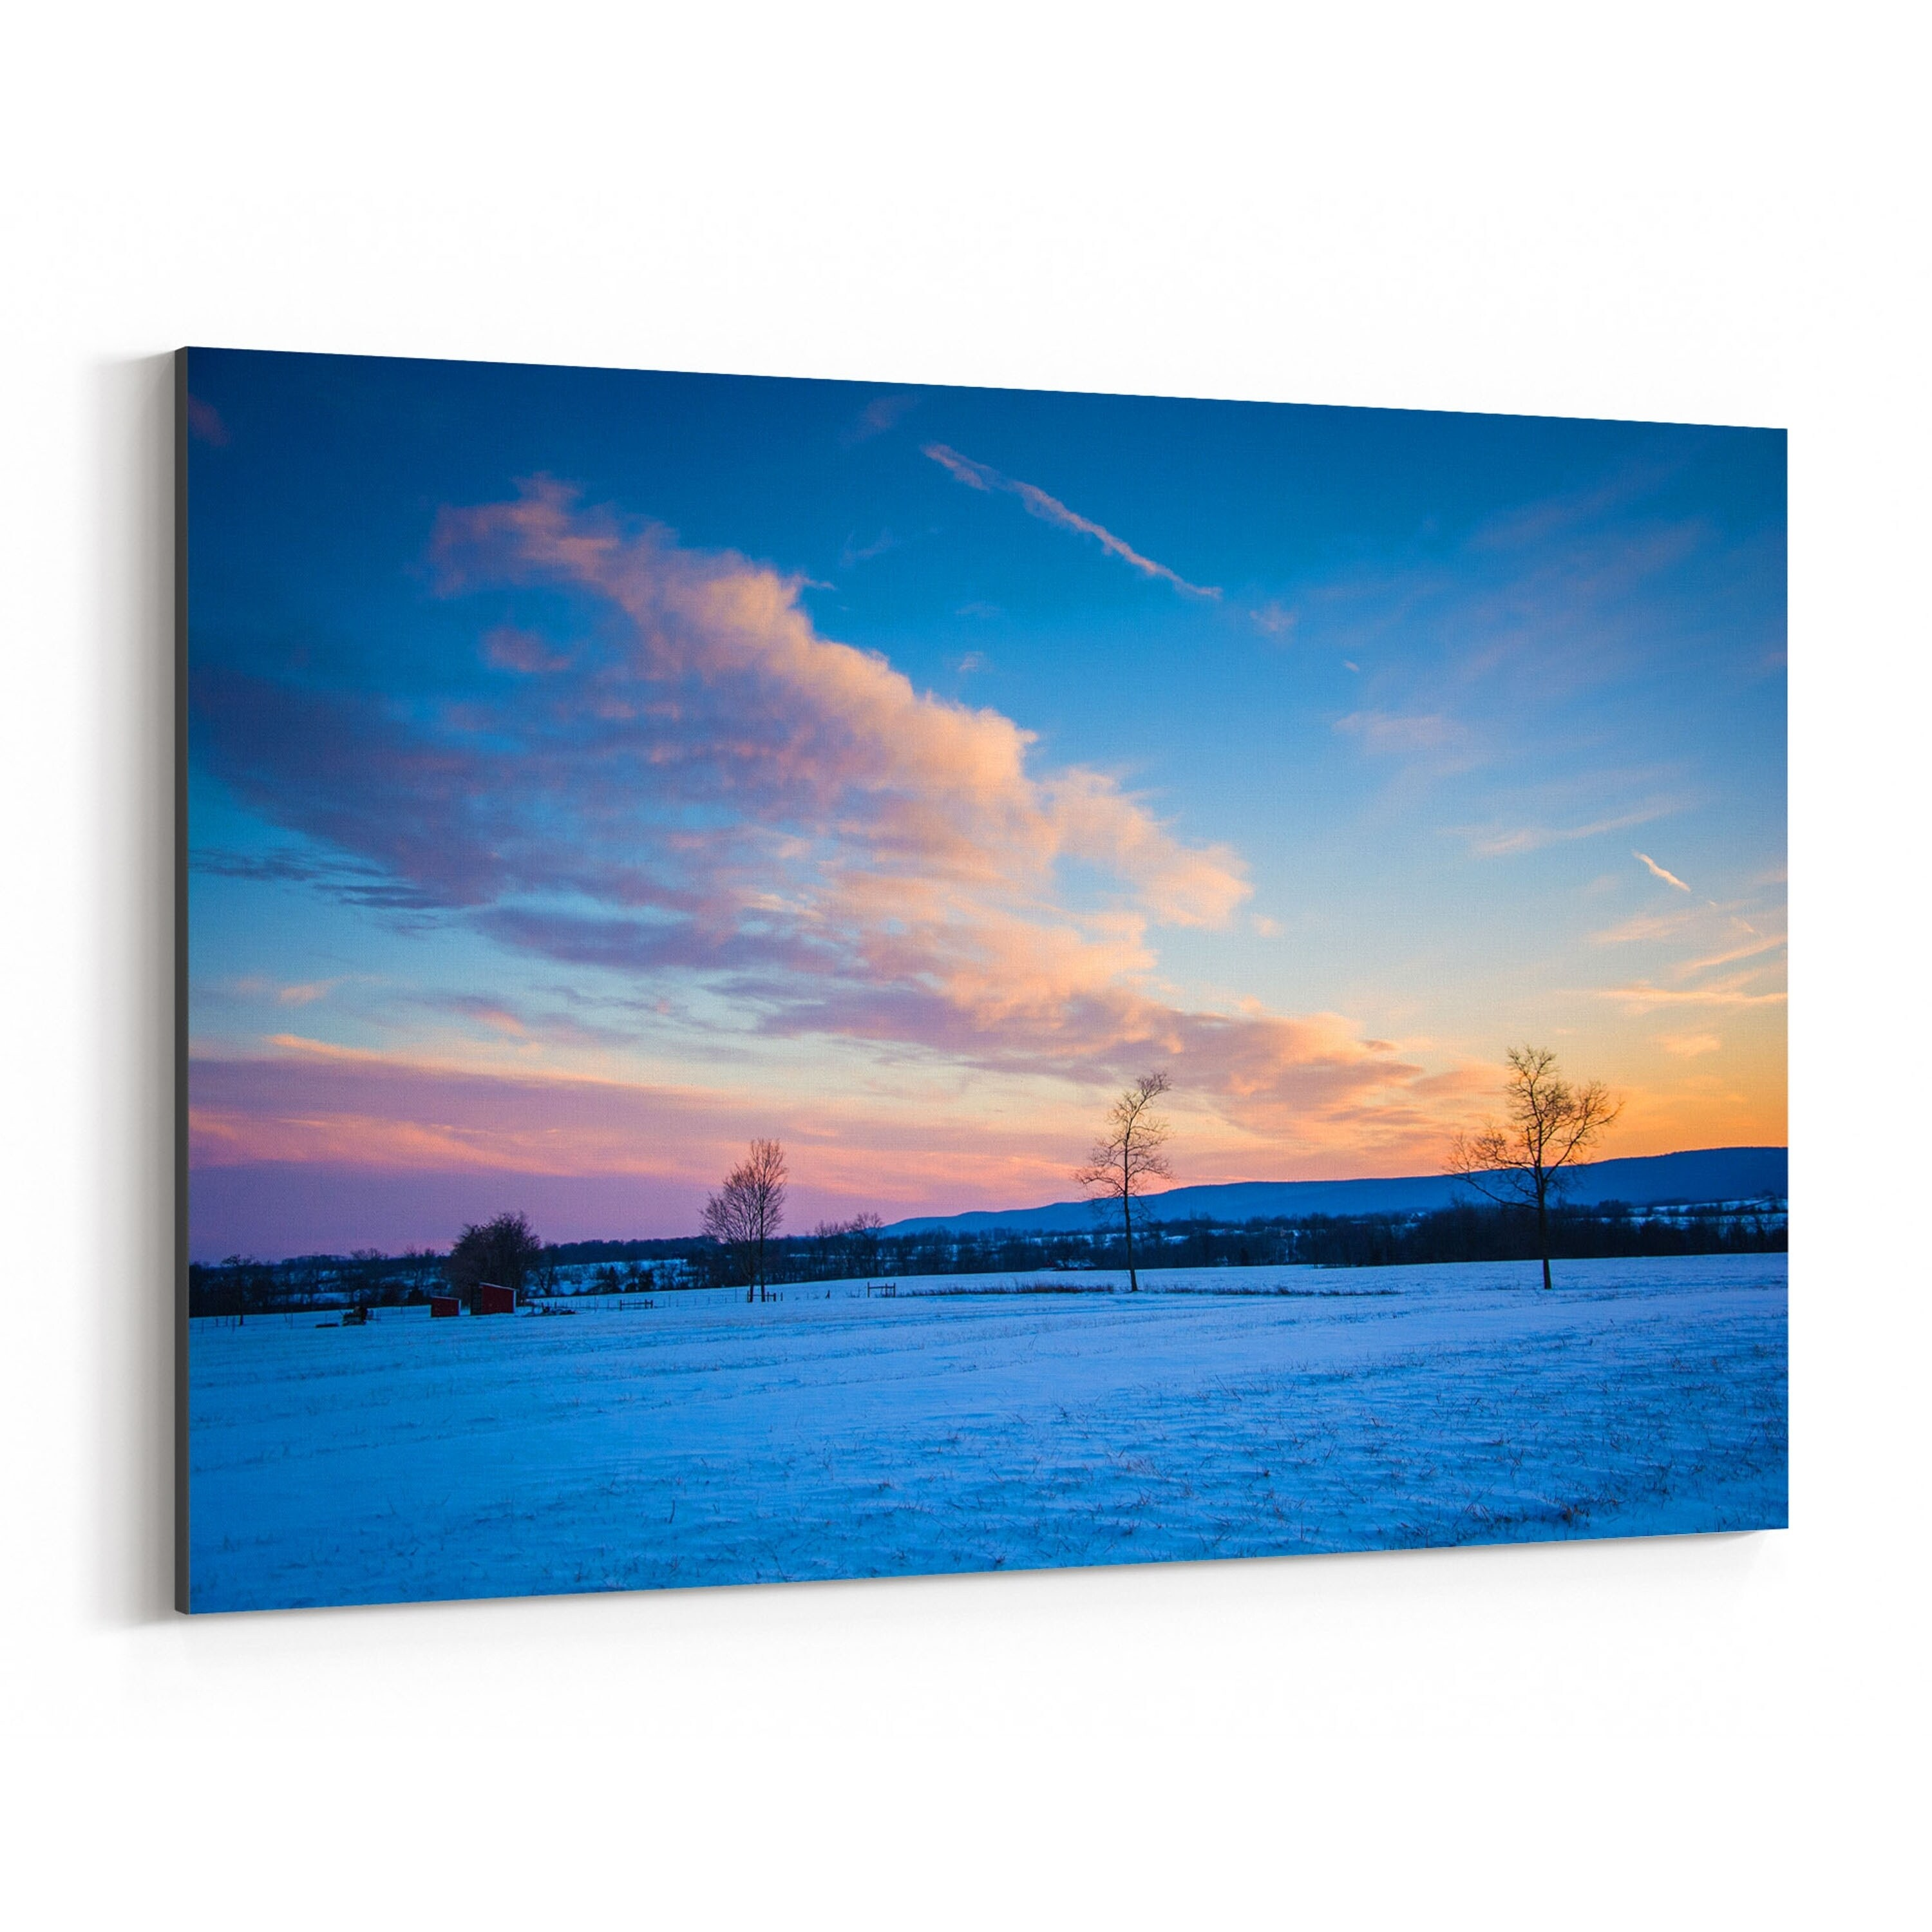 Noir gallery frederick maryland winter sunset canvas wall